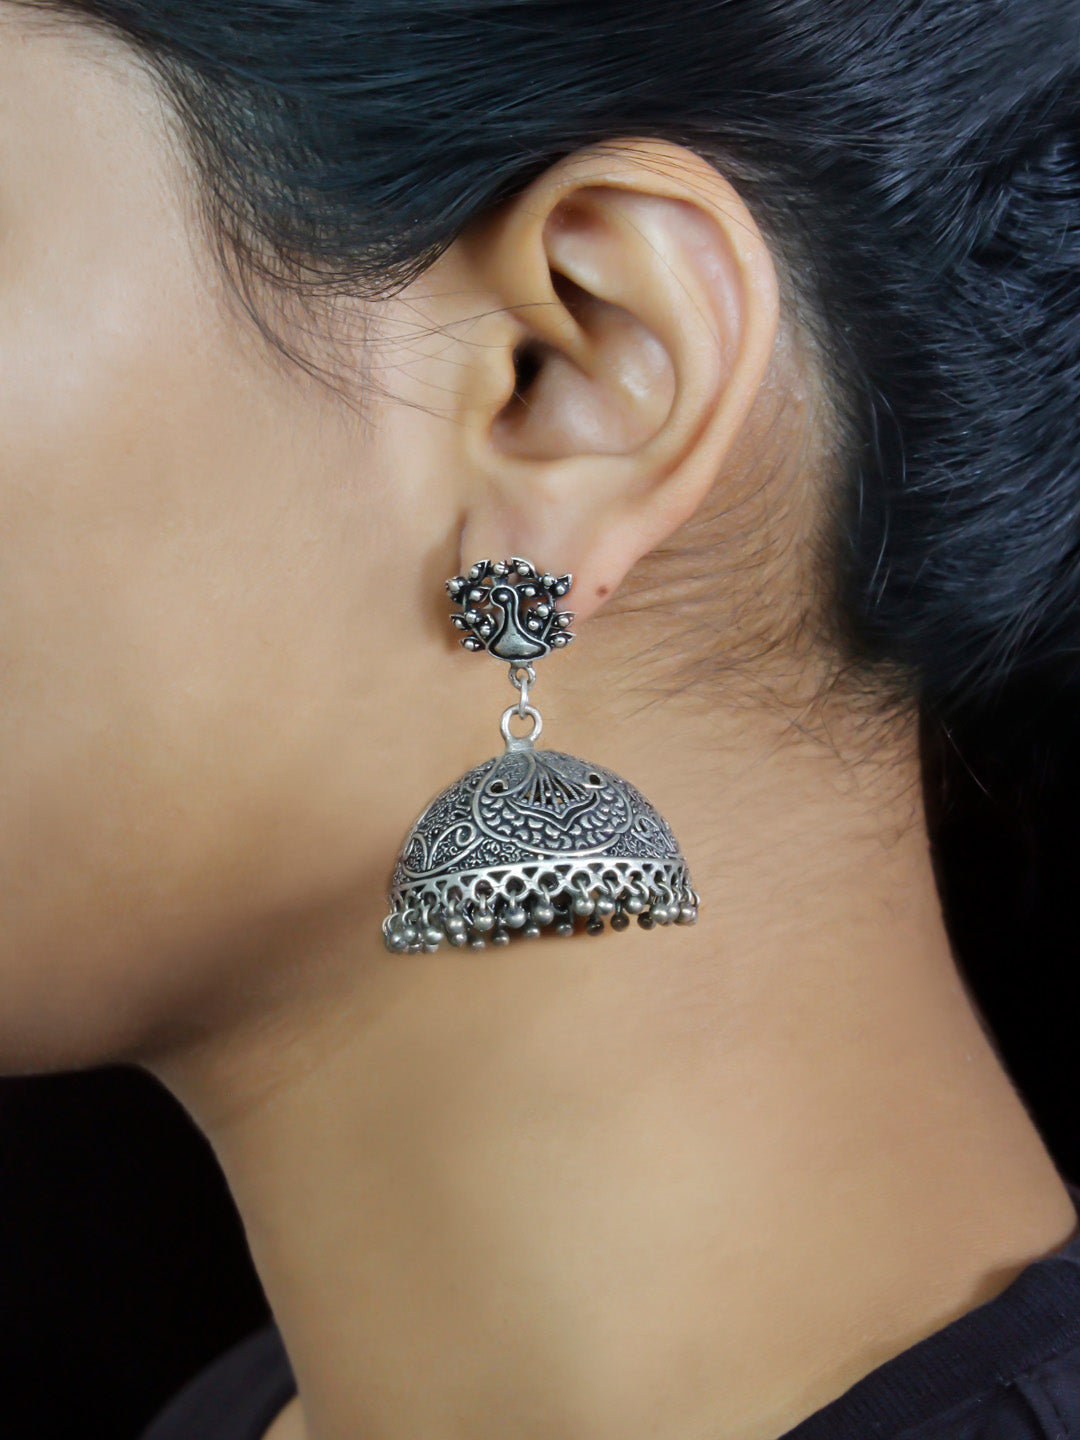 Oxidised German Silver Peacock Design Big Jhumka Earring-OXIDIZED-Earring